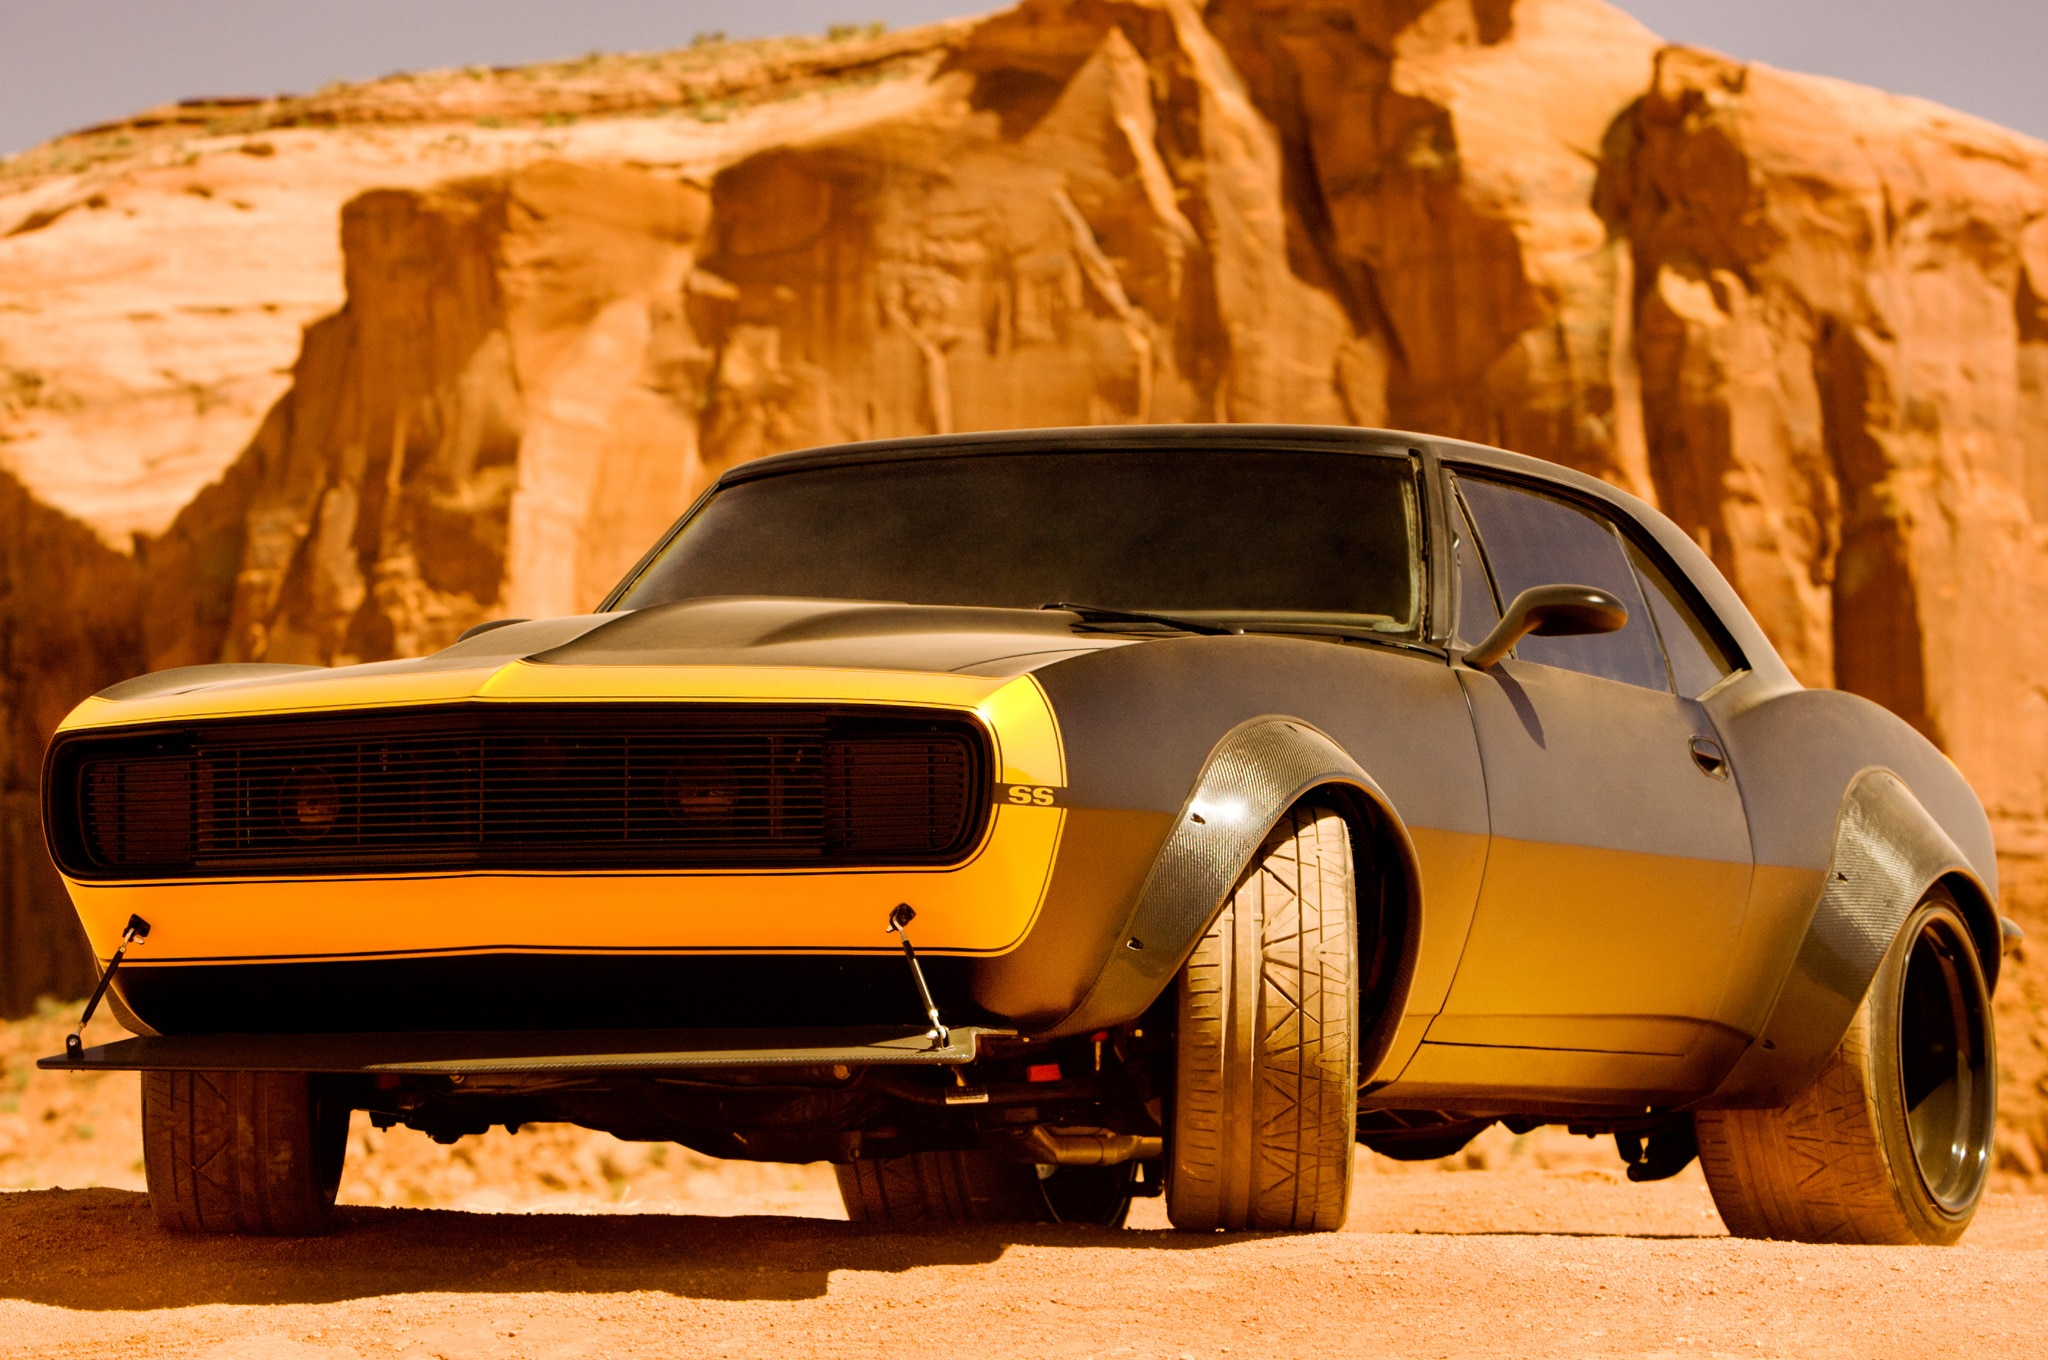 Transformers 4: Bumblebee Becomes A 1967 Chevrolet Camaro on change one step transformers, 1967 camaro transformers, dodge camaro transformers, realistic transformers, 1968 camaro transformers, shockwave transformers, off road car in transformers, camaro in transformers, hound transformers, audi r8 transformers, rally fighter transformers, attinger transformers, gmc topkick transformers, chevrolet tahoe police transformers, black and yellow camaro transformers, jazz transformers, the fallen transformers, 2010 camaro bumblebee transformers, black cars in transformers, dodge challenger transformers,